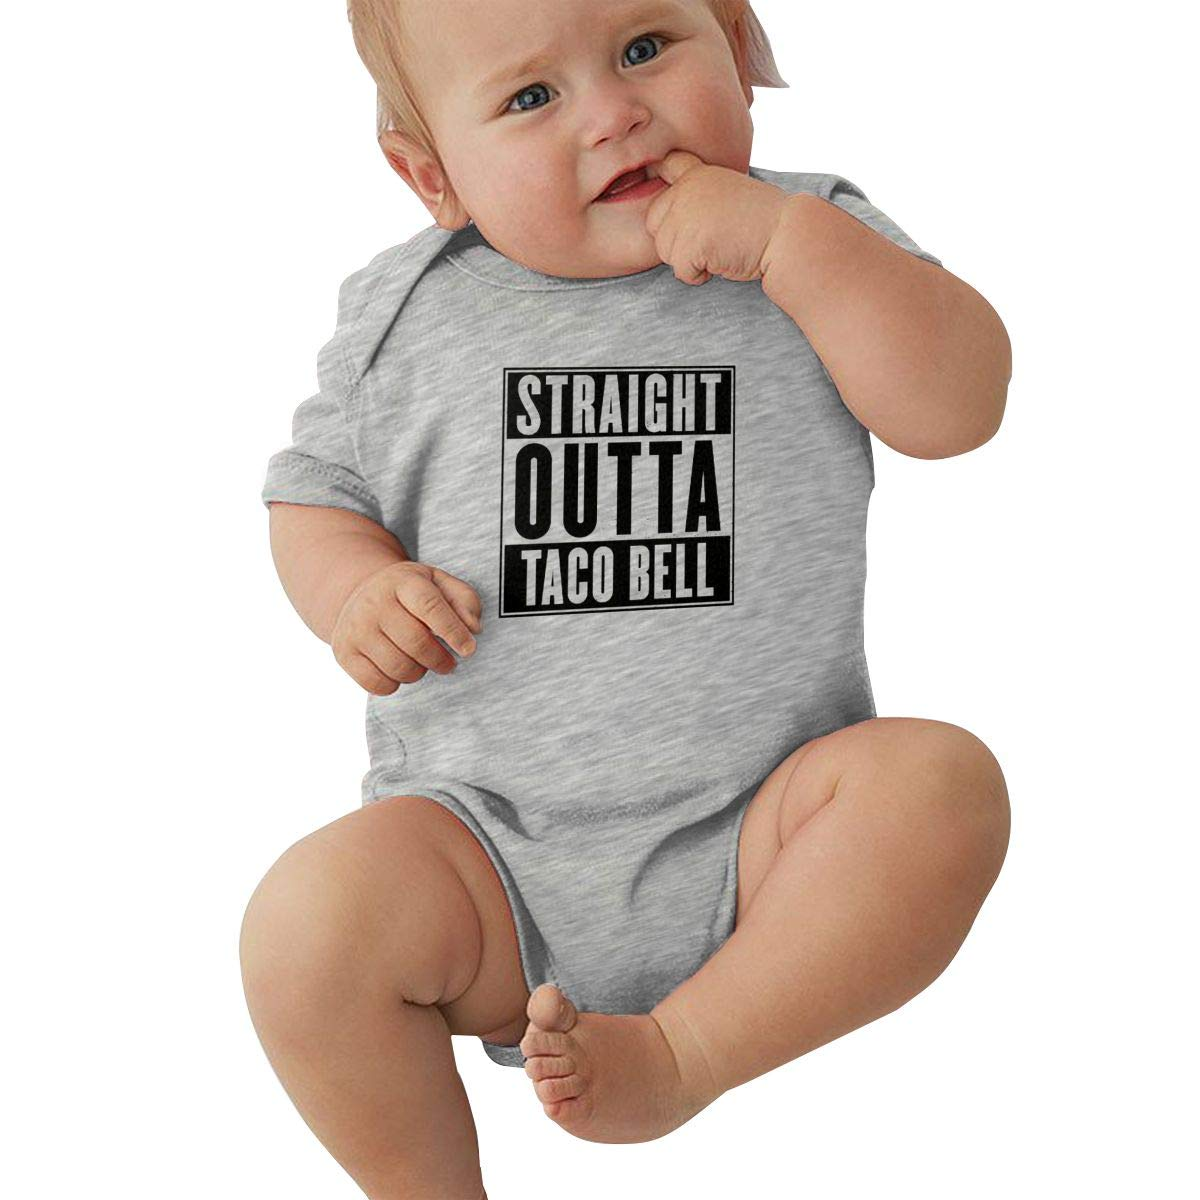 Straight Outta Taco Bell Graphic Newborn Baby Short Sleeve Bodysuit Romper Infant Summer Clothing Gray